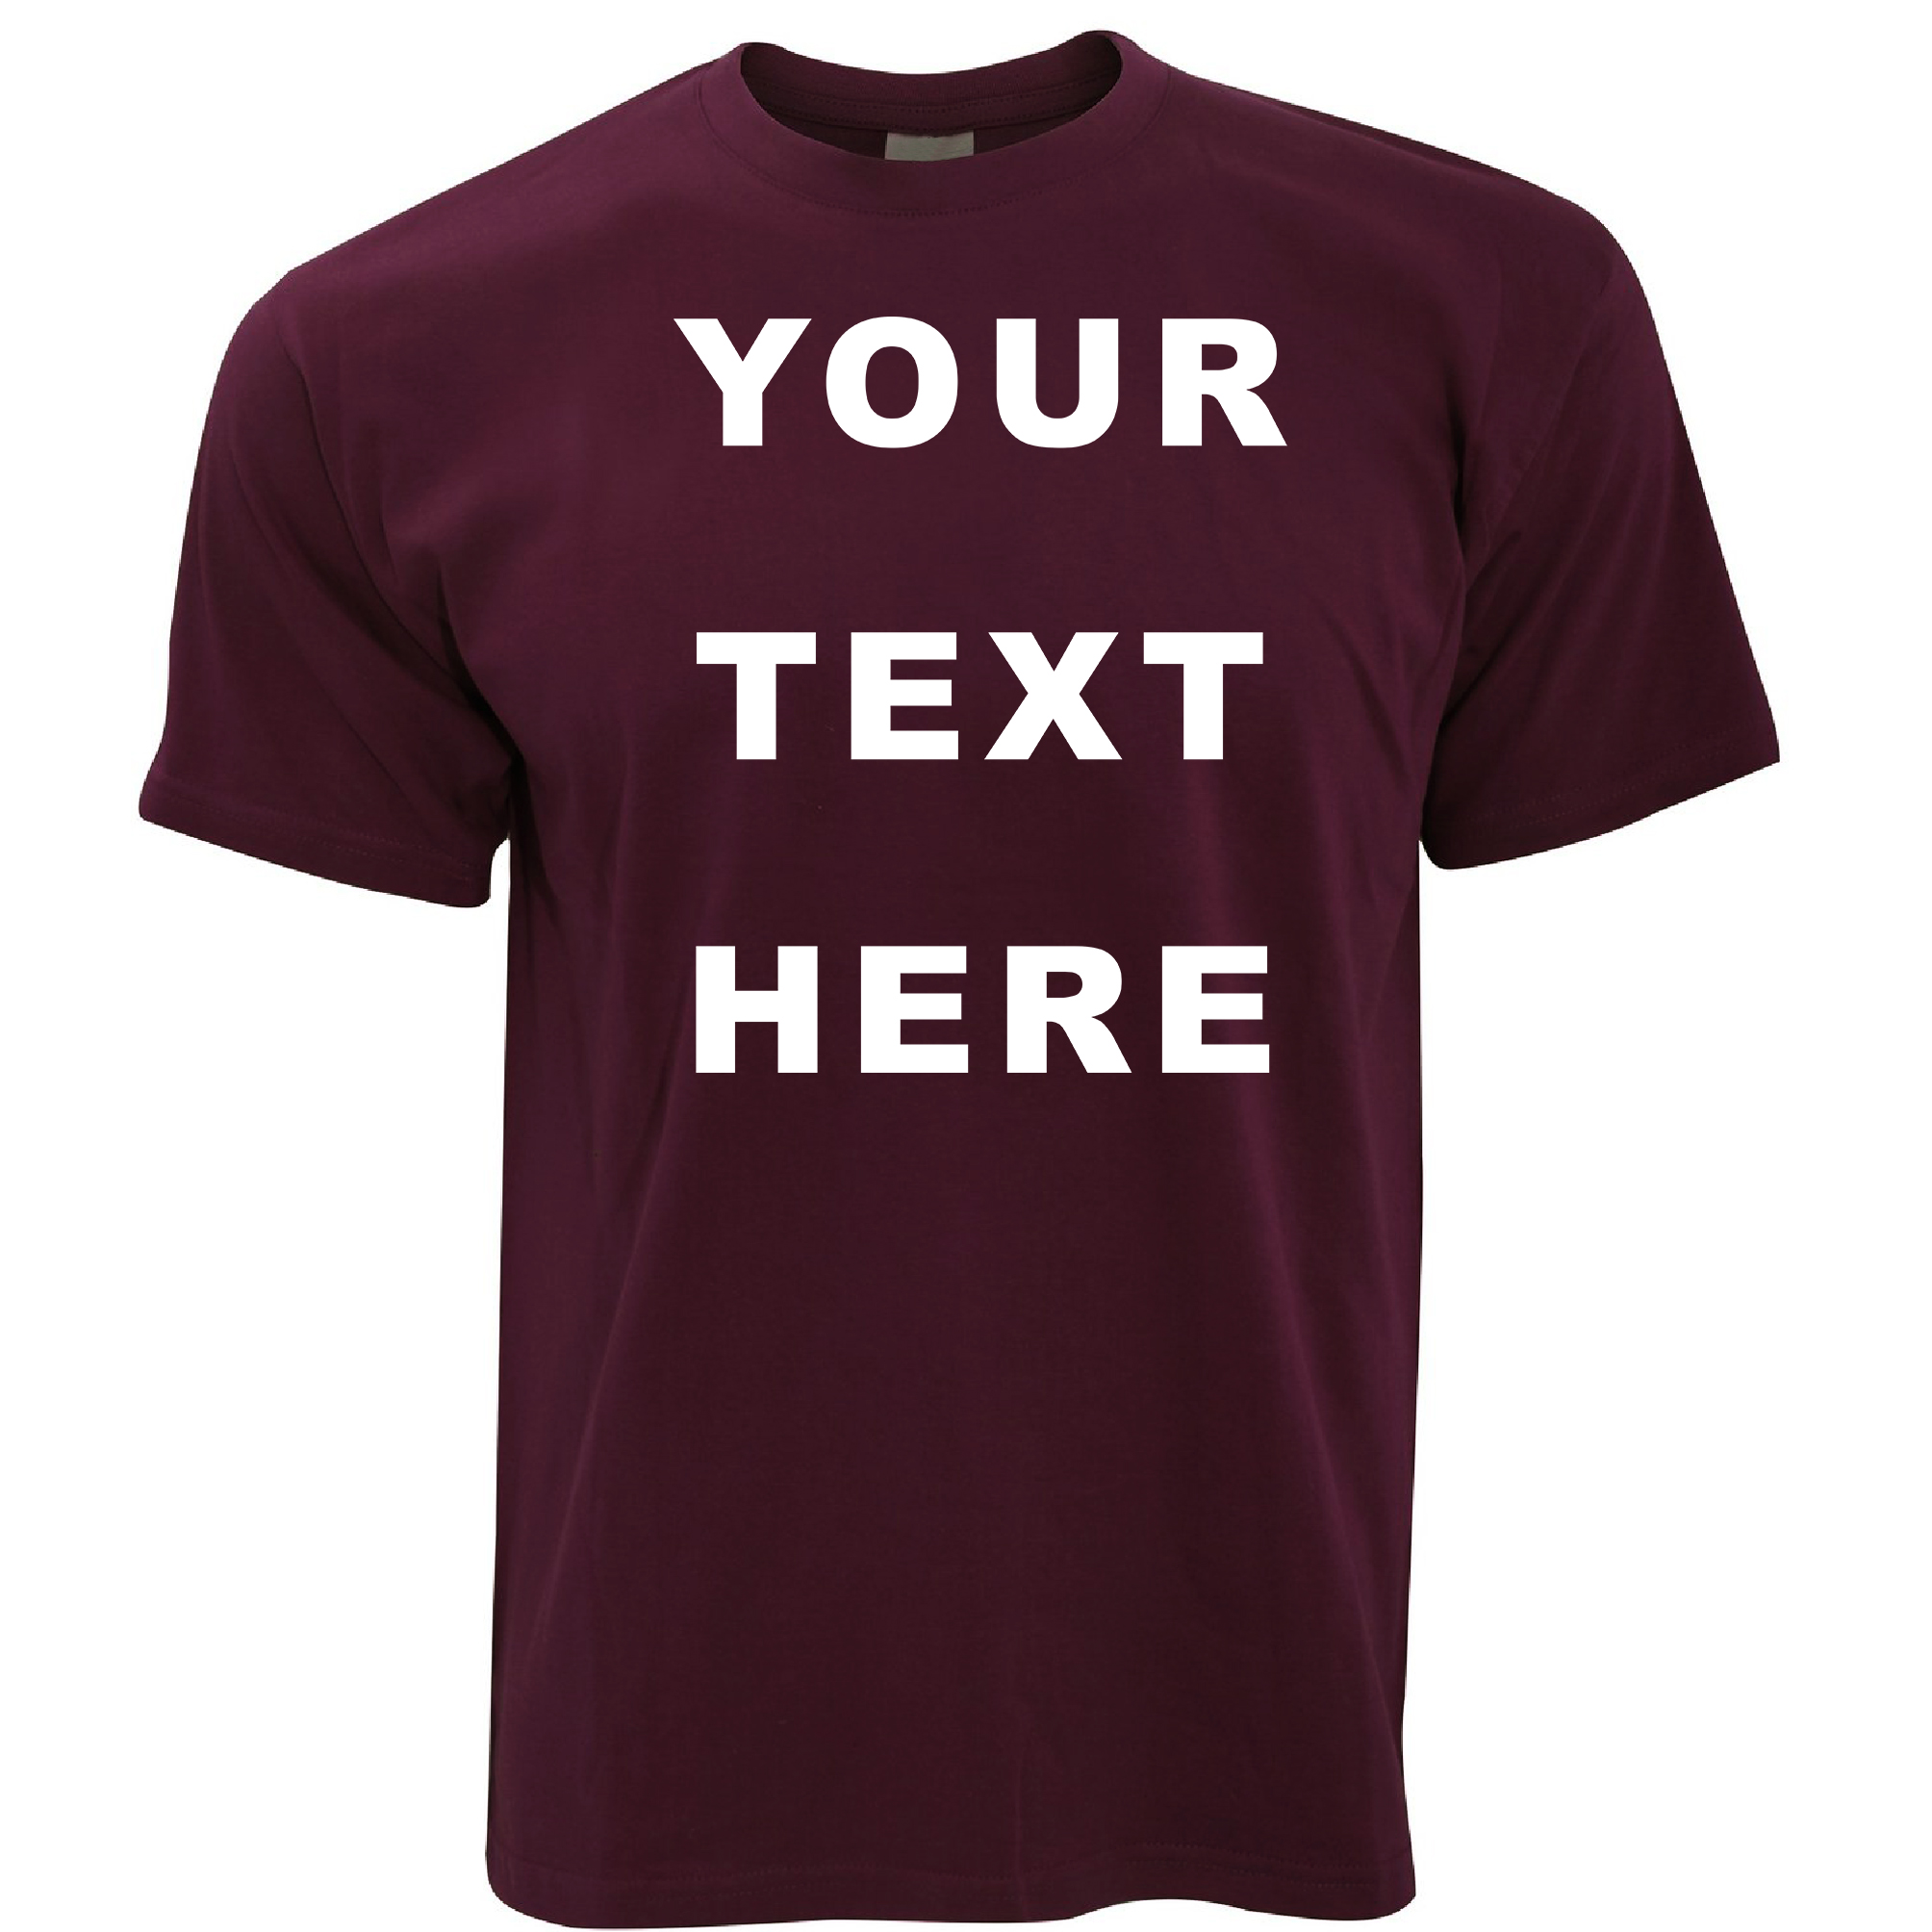 Your text here custom personalised printed mens t shirt ebay for Print photo on shirt